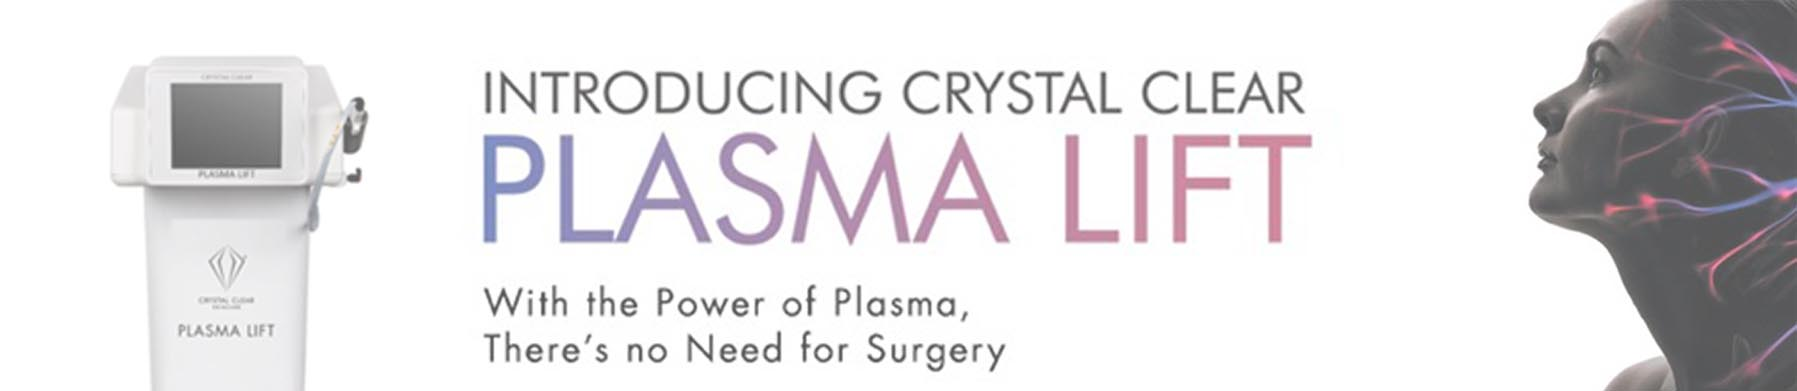 Plasma Lift Face Lift Sure Aesthetics